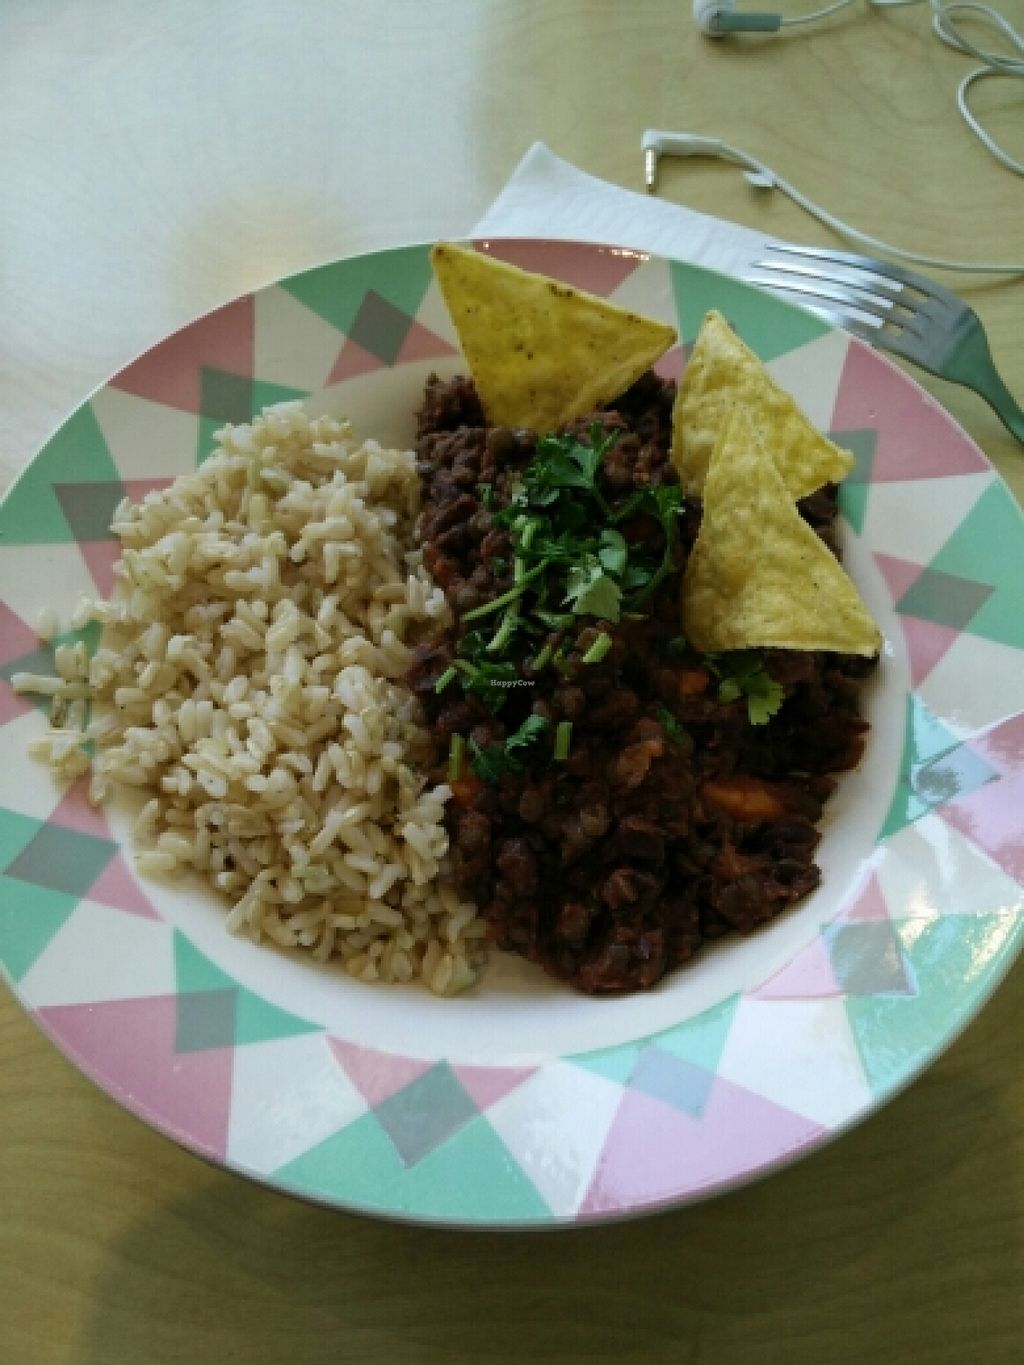 """Photo of Against the Grain  by <a href=""""/members/profile/Chrisarnold"""">Chrisarnold</a> <br/>brown rise with beans/lentils  <br/> February 26, 2016  - <a href='/contact/abuse/image/66470/137853'>Report</a>"""